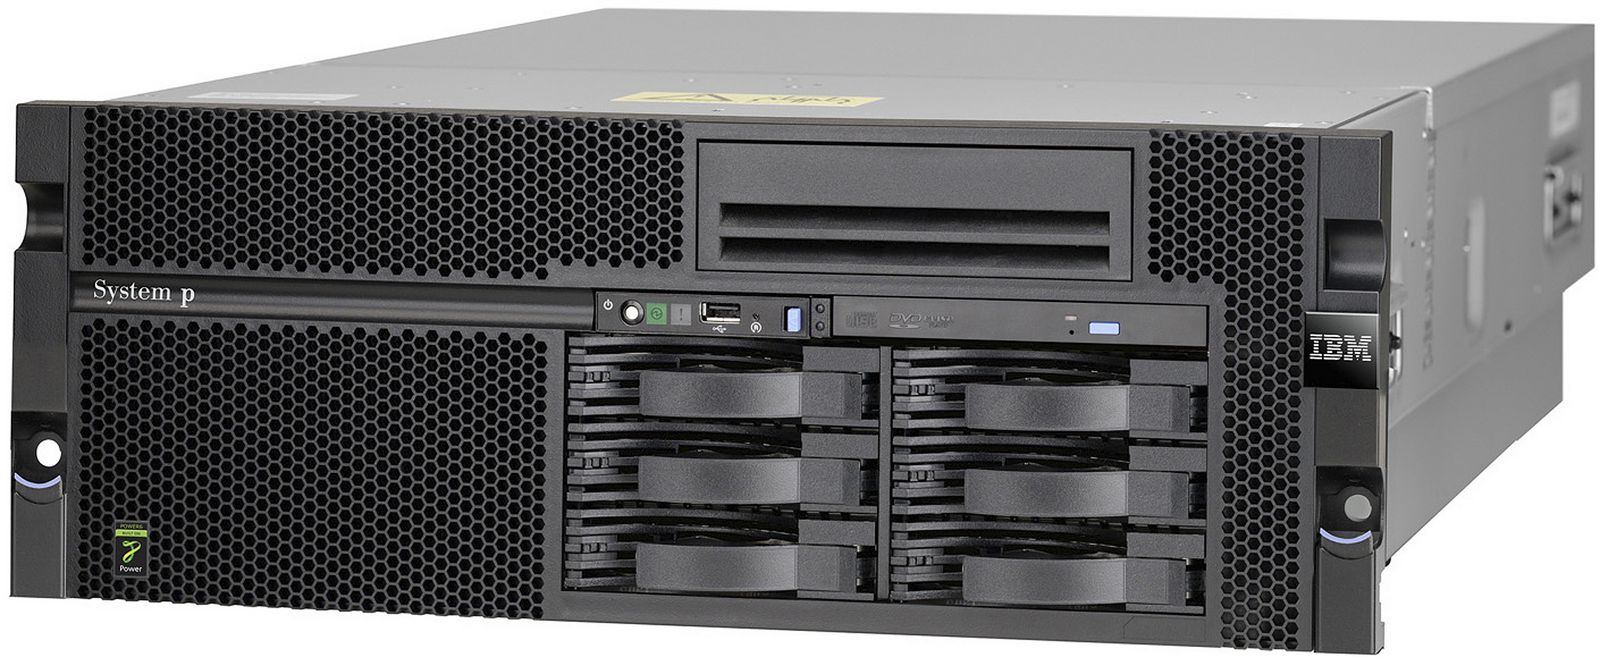 IBM P6 550 IBM P6 550 POWER6 pSeries Server